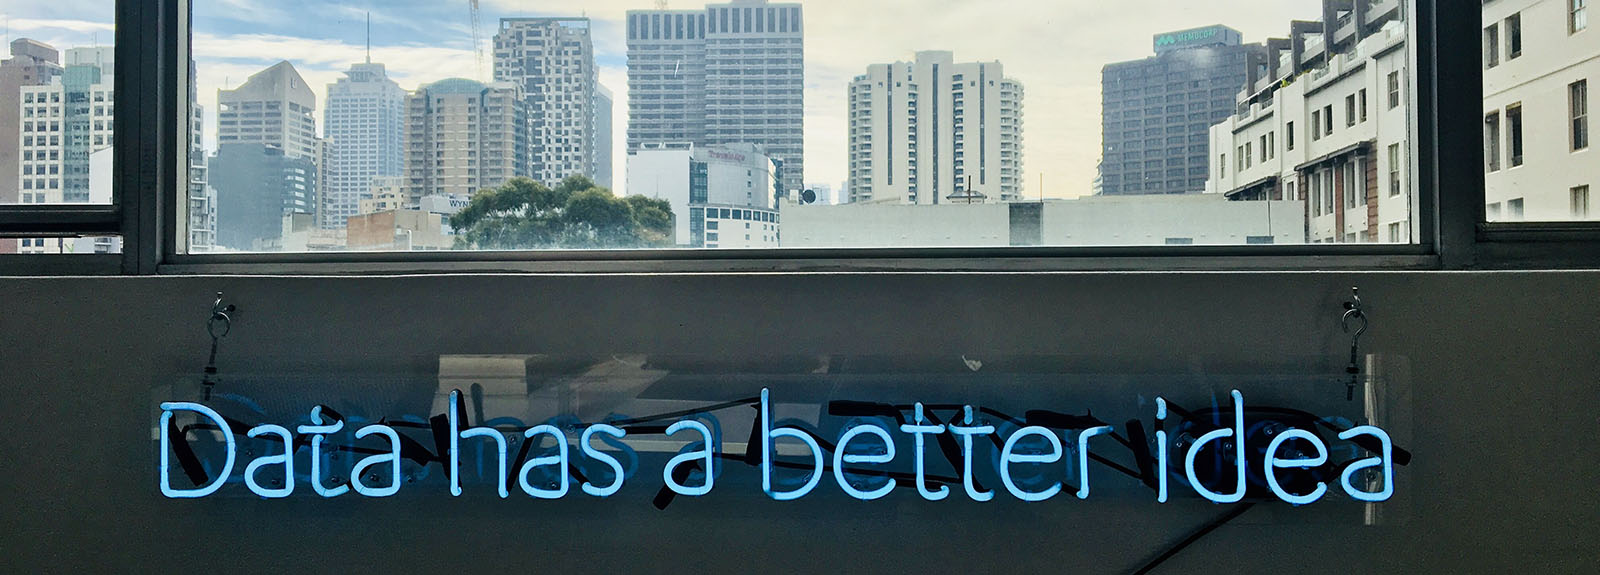 Neon sign saying 'Data has a better idea'